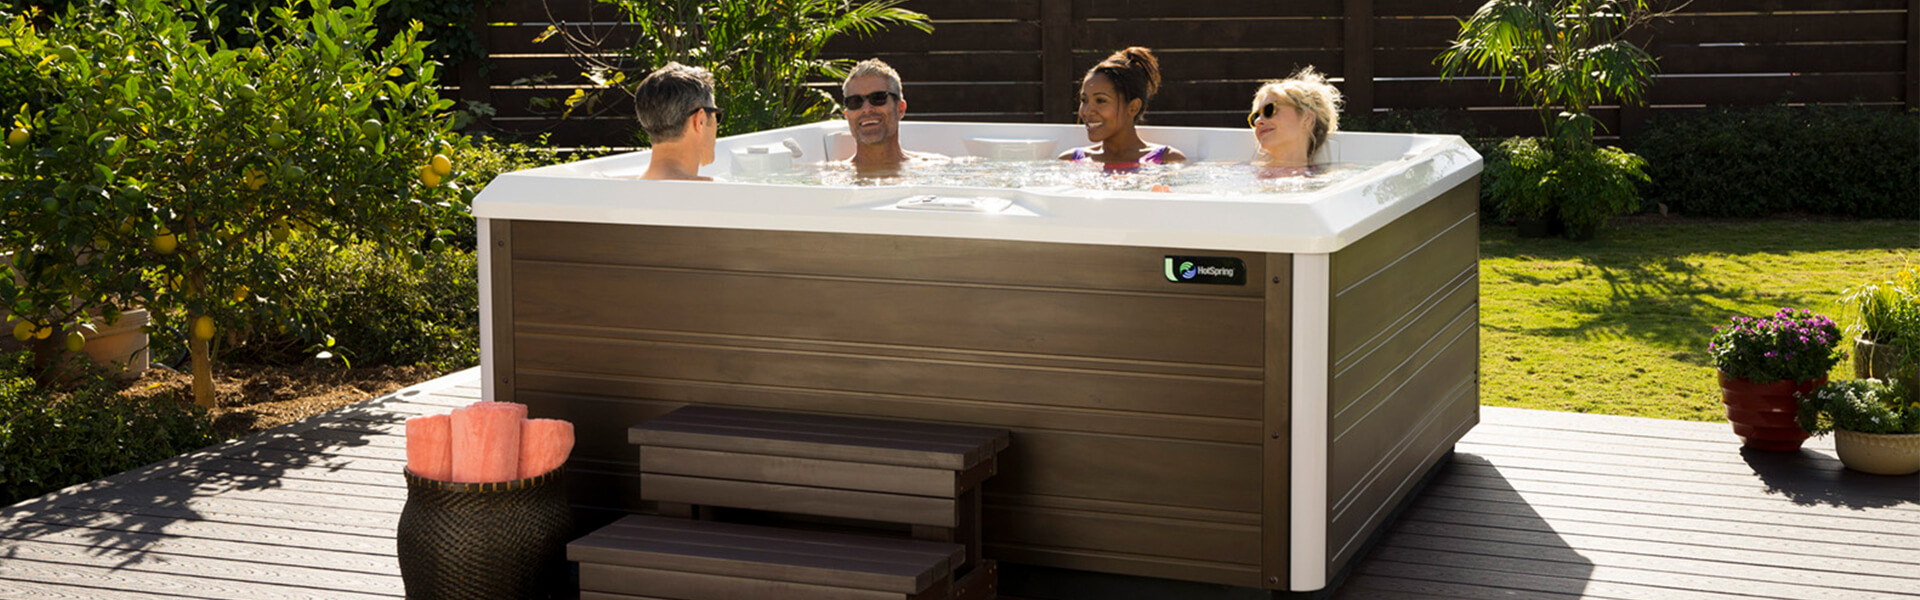 New and Used Hot Tubs Burnsville Dealer  Shares 3 Ways to Get a Grip on Stress